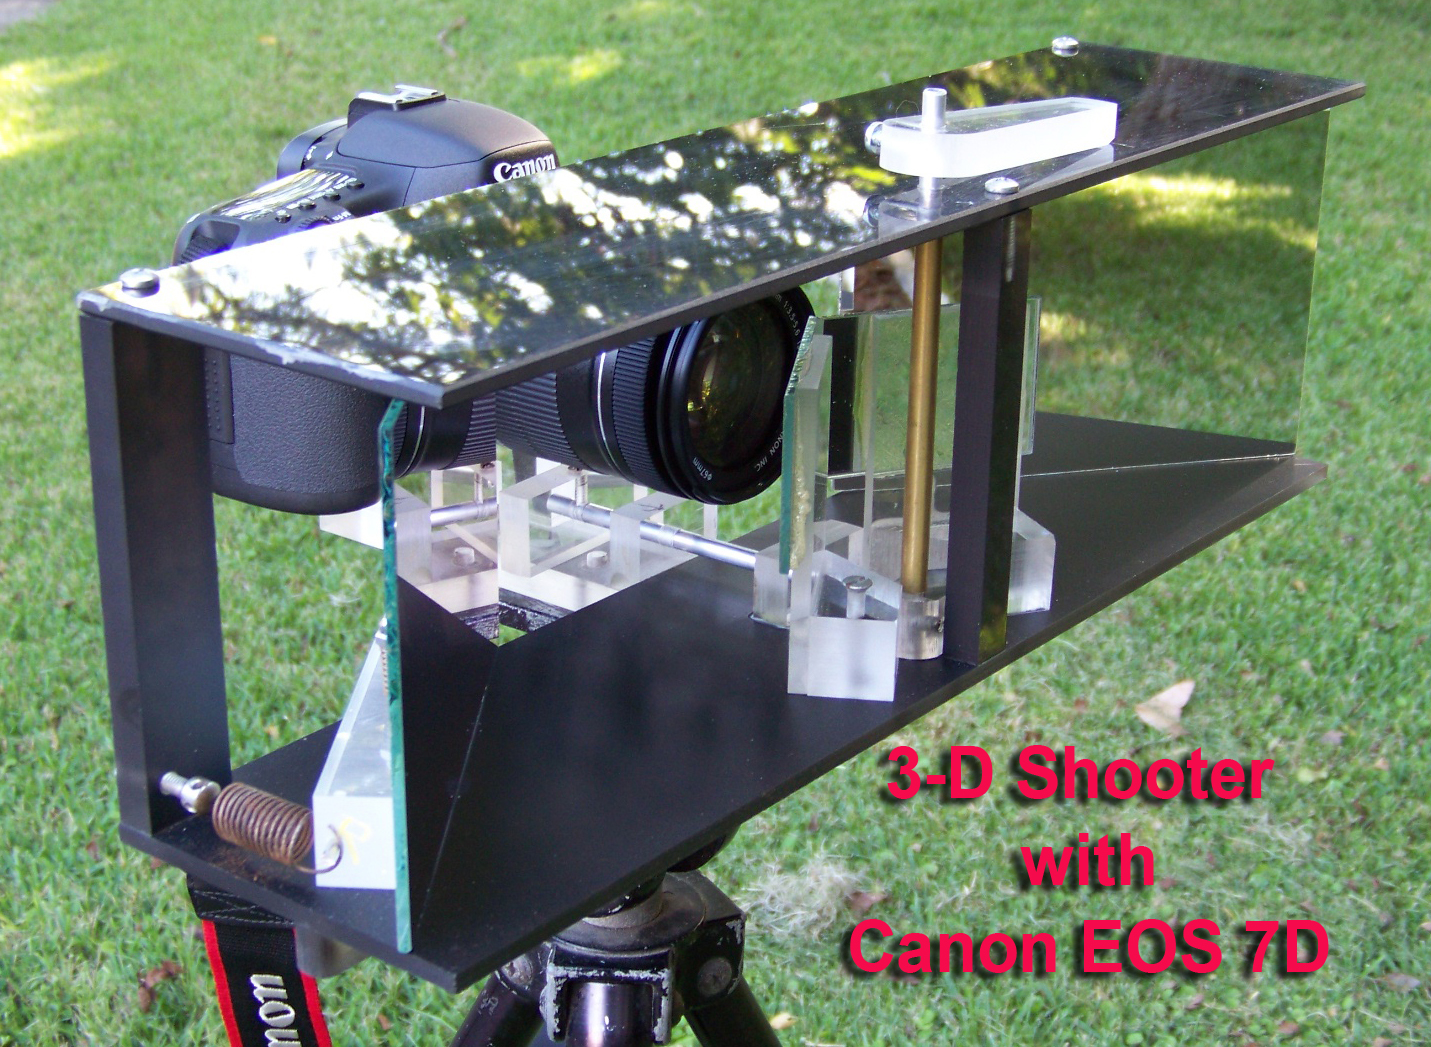 Make a 3-D Stereoscope Slide and Video Shooter